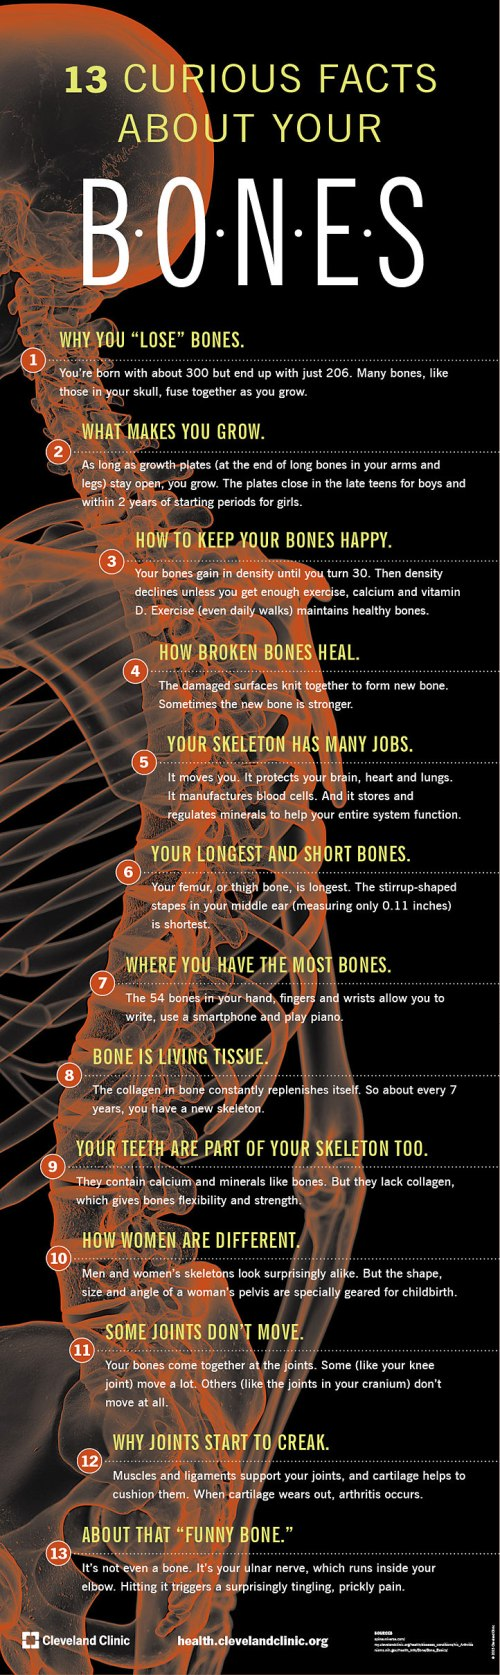 Curious-Facts-About-Your-Bones-infographic-722.jpg